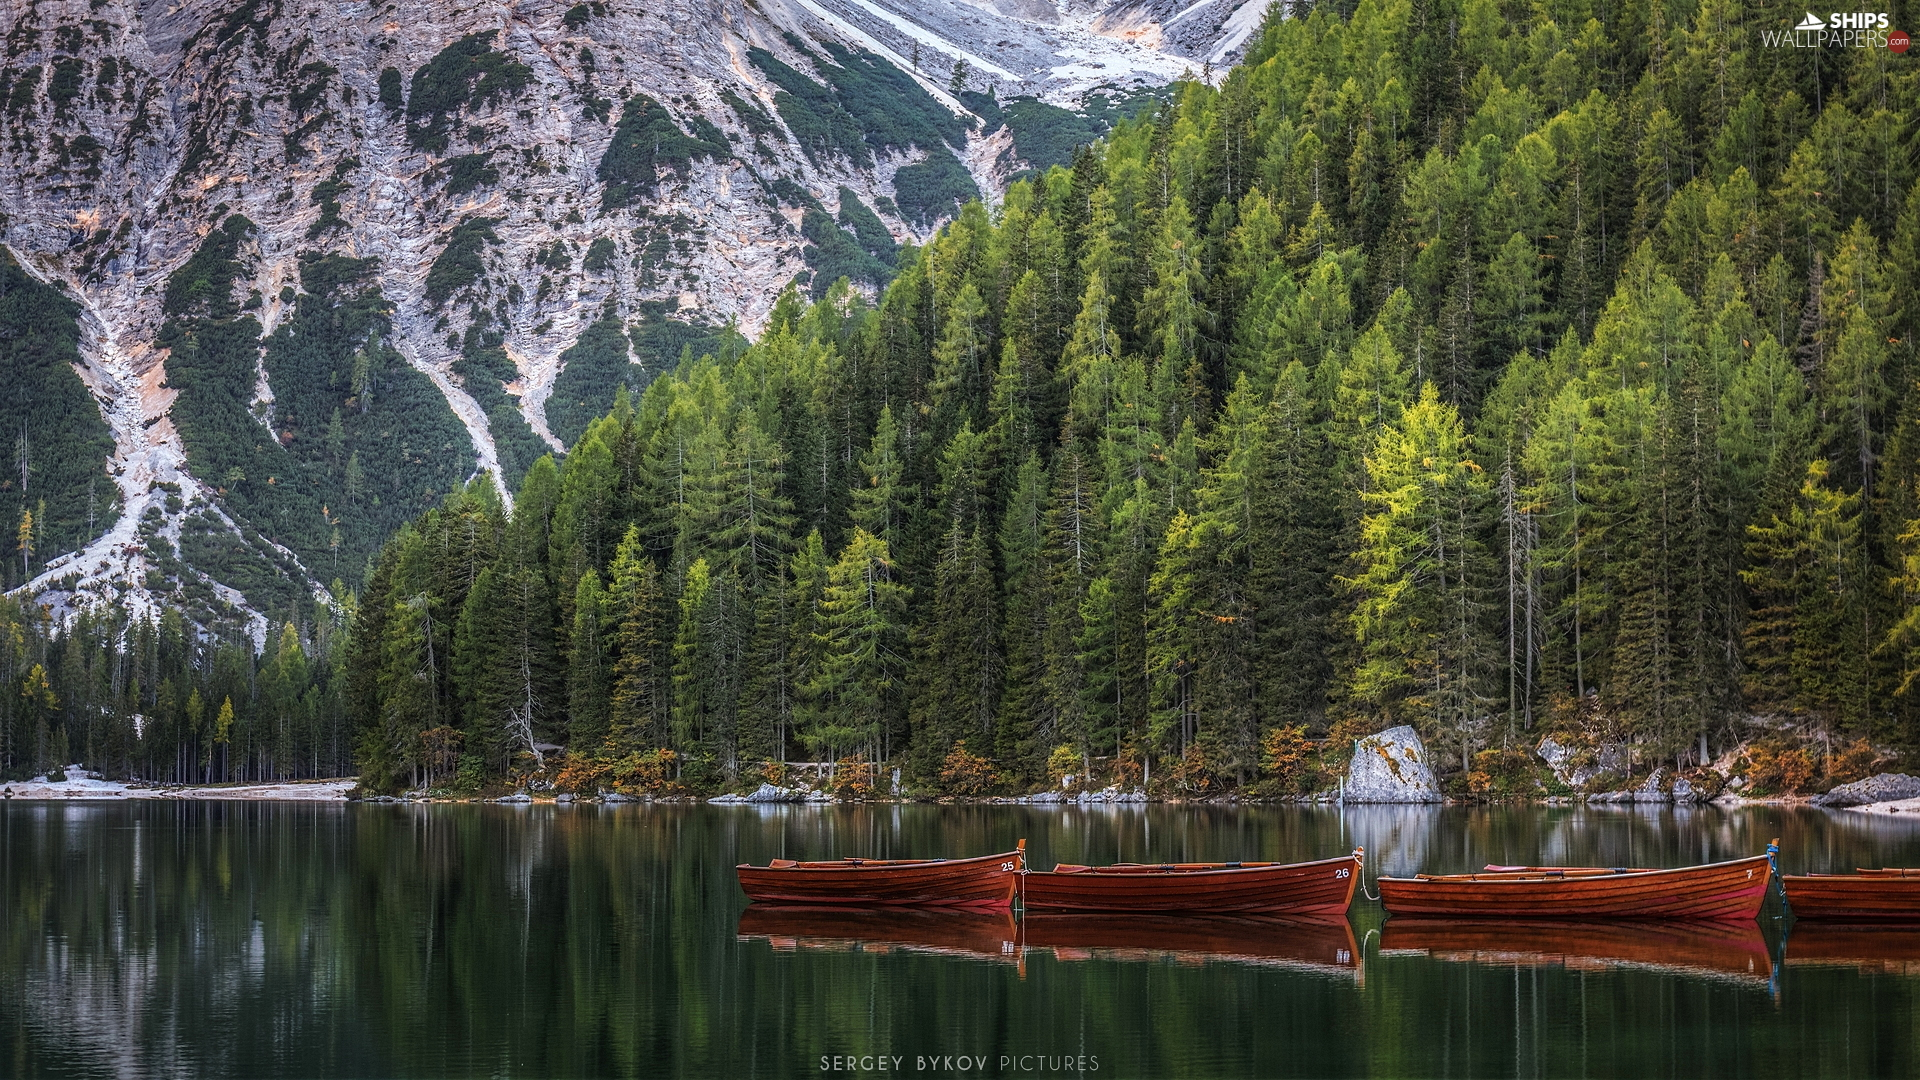 trees, South Tyrol, Pragser Wildsee Lake, Dolomites Mountains, Italy, viewes, boats